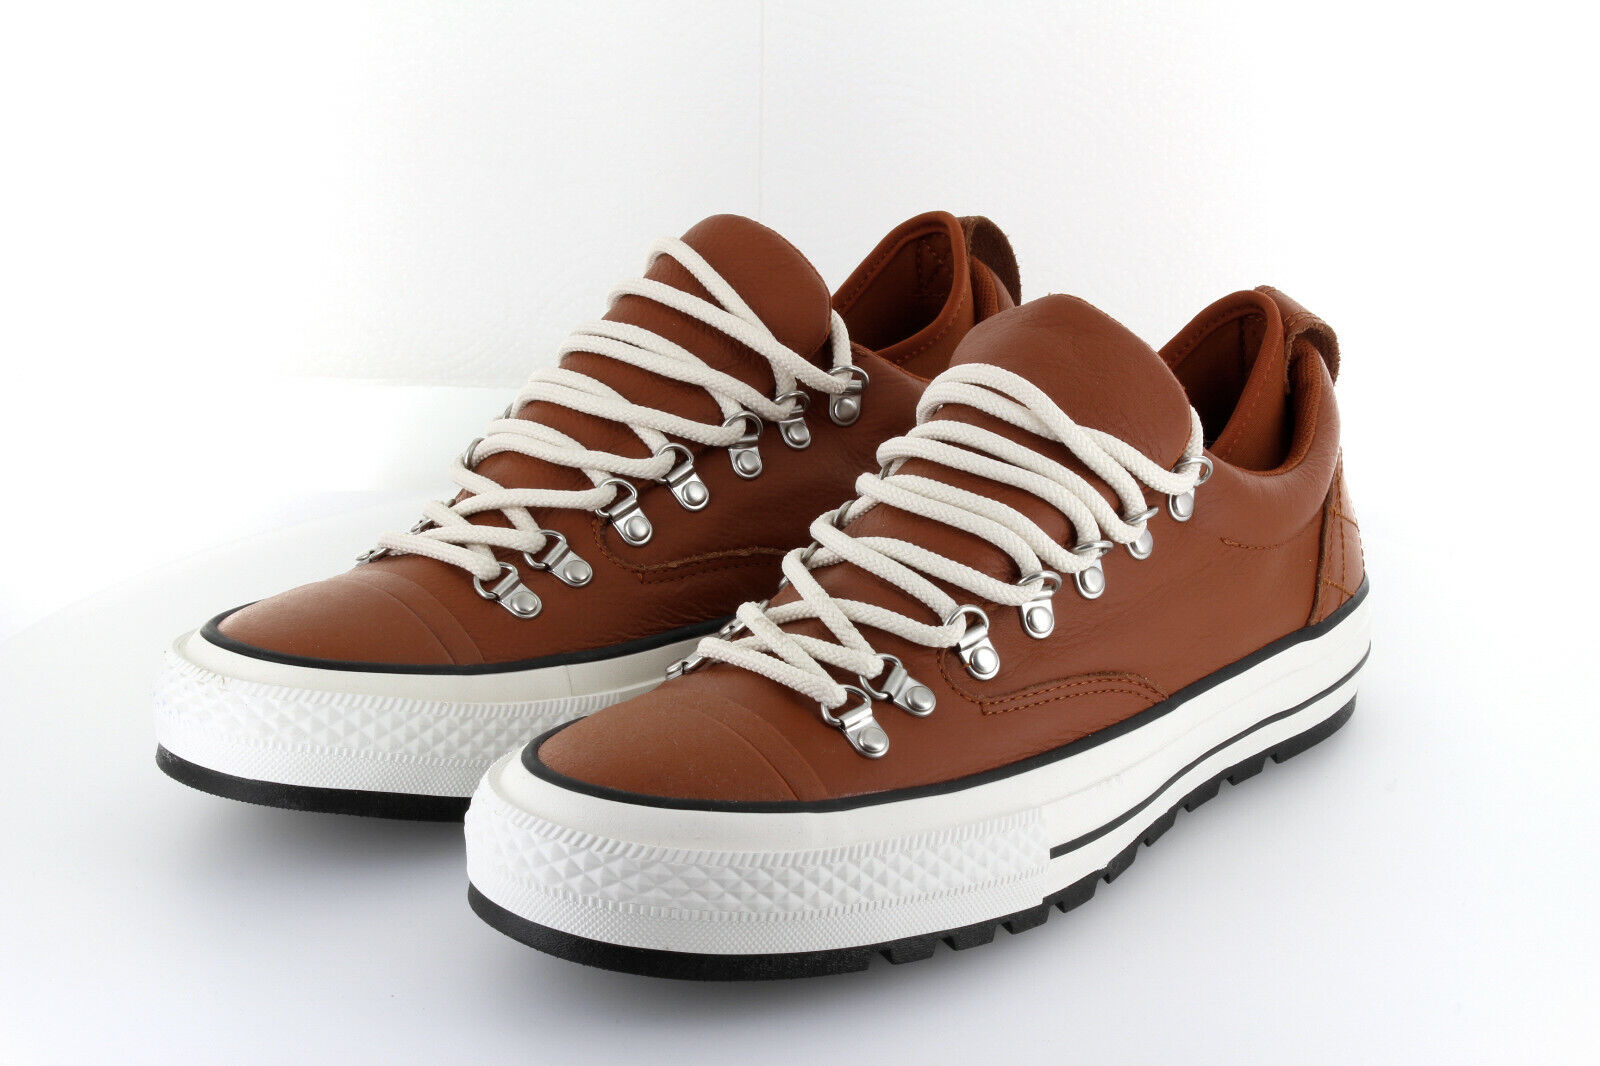 Converse CT as Ox descent marrón cognac Leather Limited Edition 42,5 43 us 9